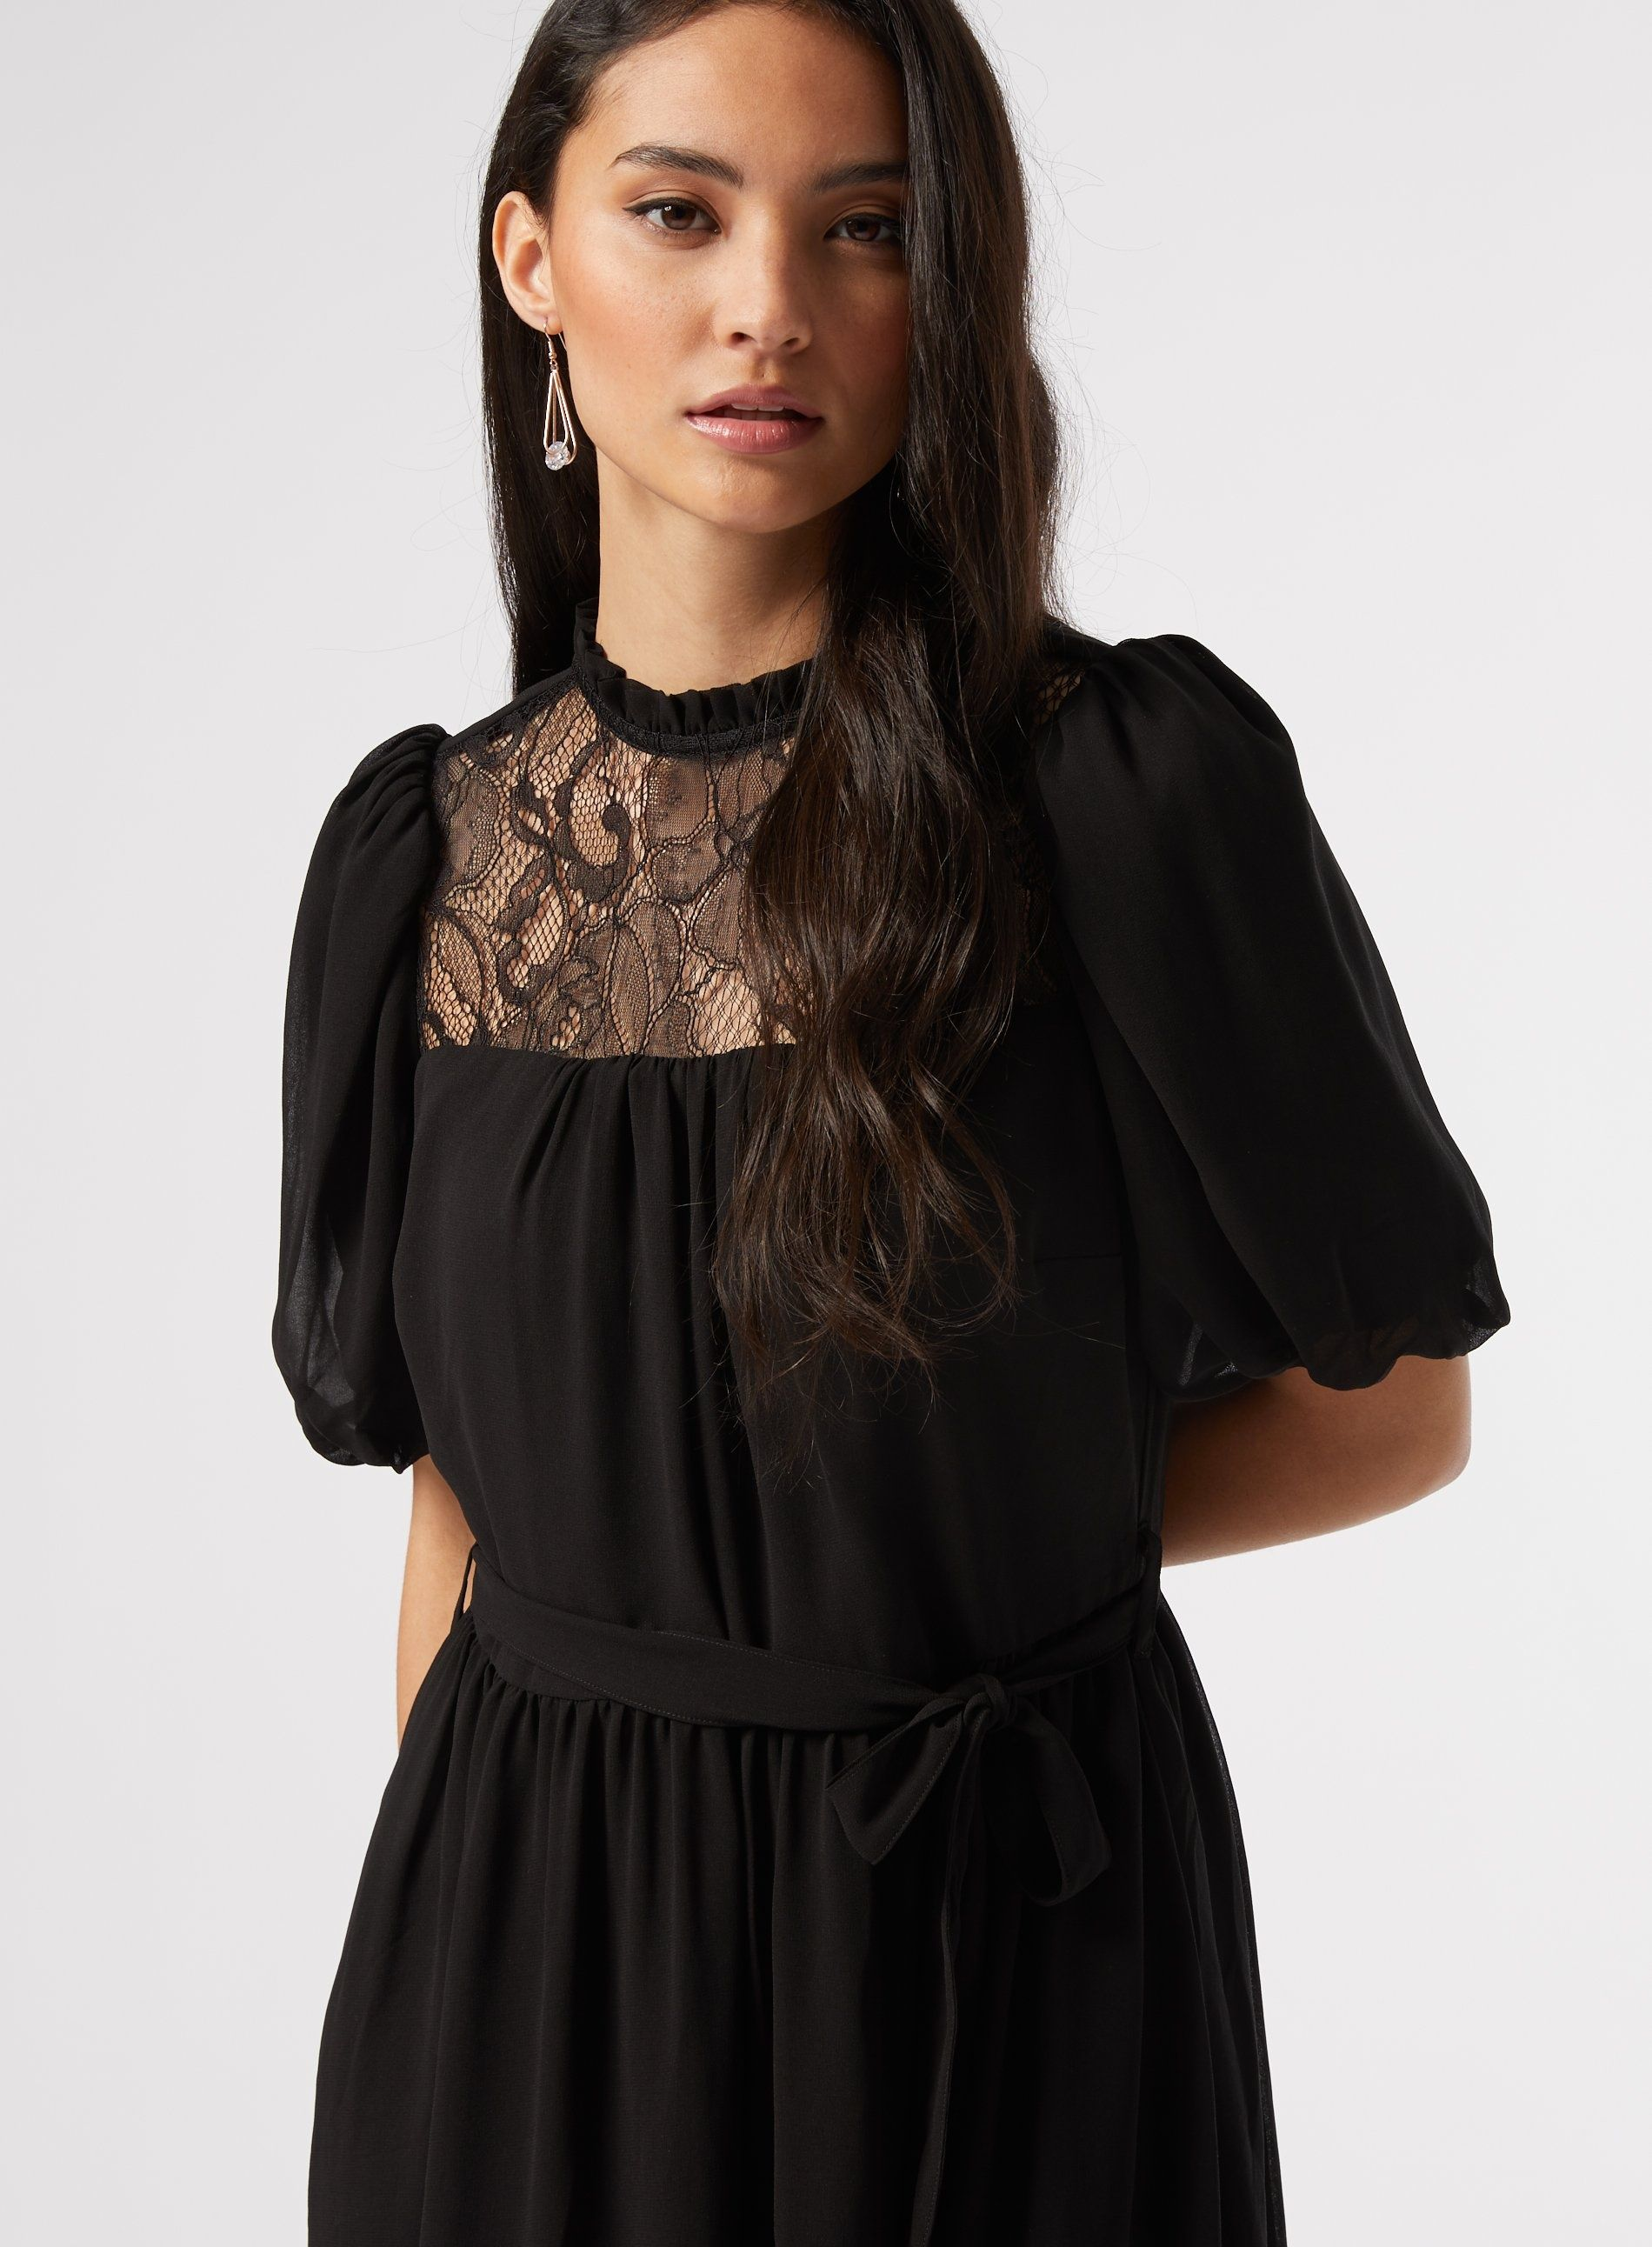 Dorothy Perkins Womens Petite Black Lace Fit Flare Chiffon Pullover Dress